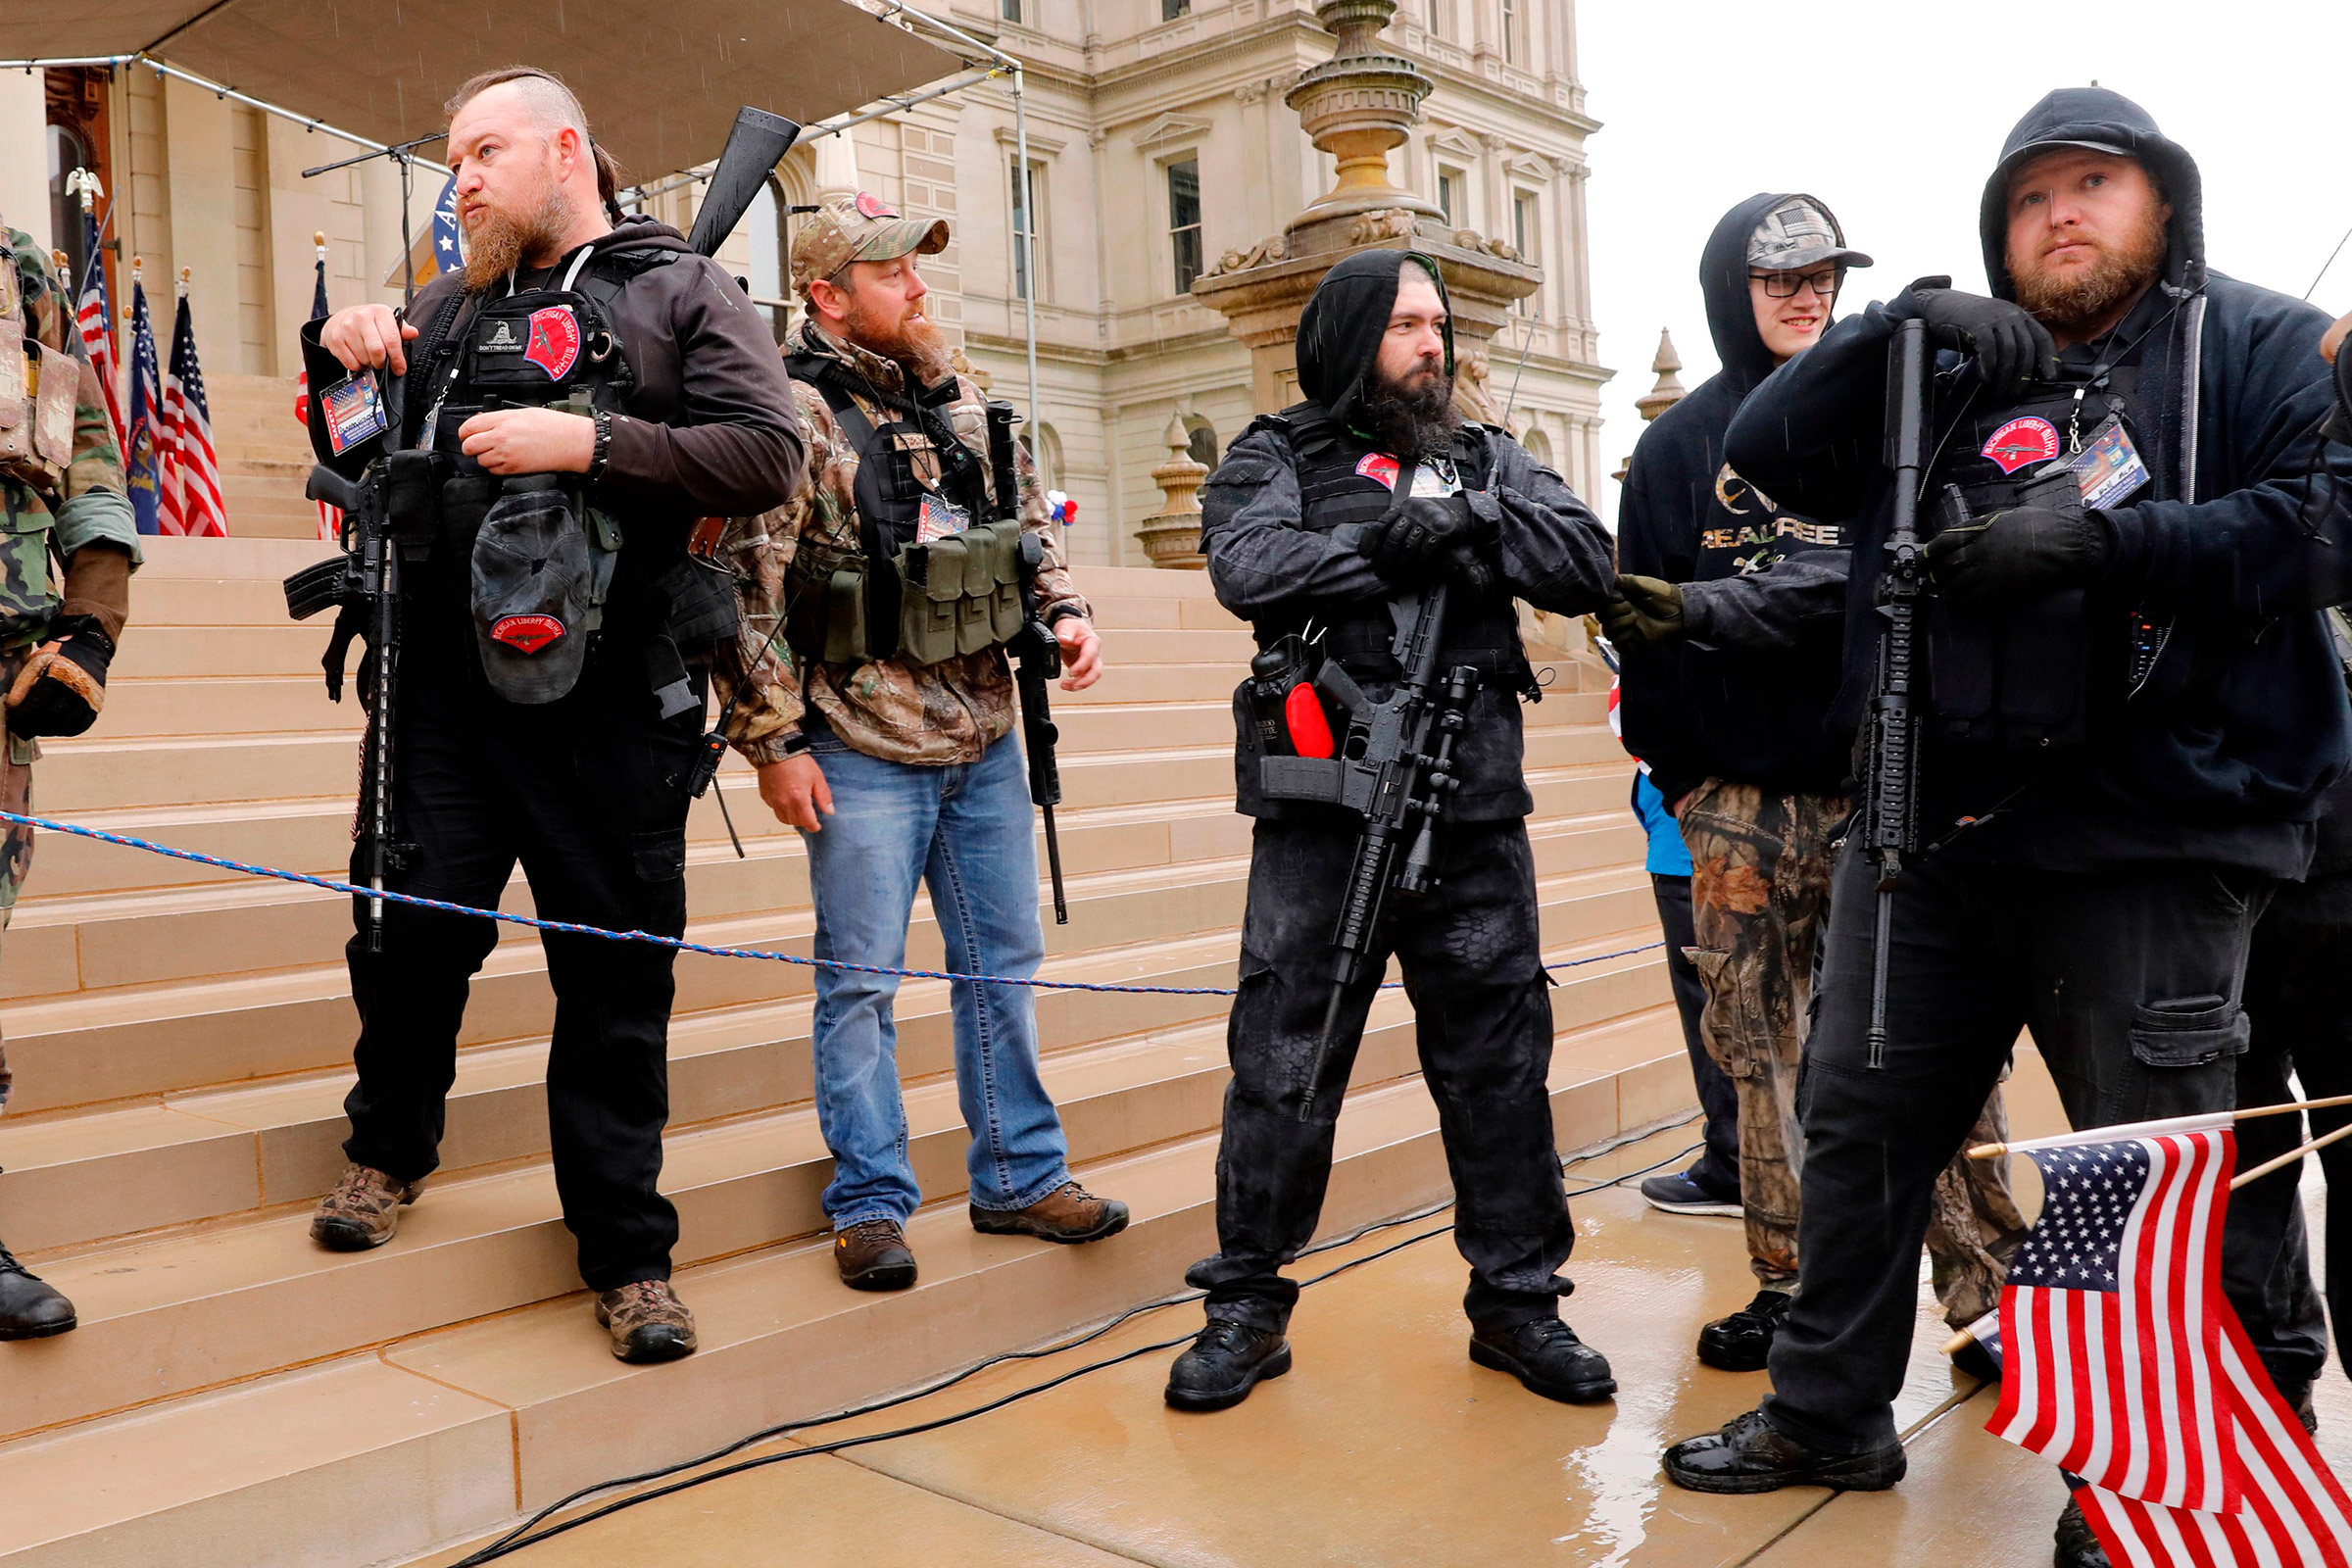 Michael Null (R) and William Null (L) arrive at the American Patriot Rally, to demand the reopening of businesses on the steps of the Michigan State Capitol in Lansing, Mich., on April 30, 2020. Thirteen men, including members of two right-wing militias, have been arrested for plotting to kidnap Michigan Gov. Gretchen Whitmer and  instigate a civil war , Michigan Attorney General Dana Nessel announced on October 8, 2020. The Nulls were charged for their alleged roles in the plot, according to the FBI. The brothers are charged with providing support for terroristic acts and felony weapons charges.